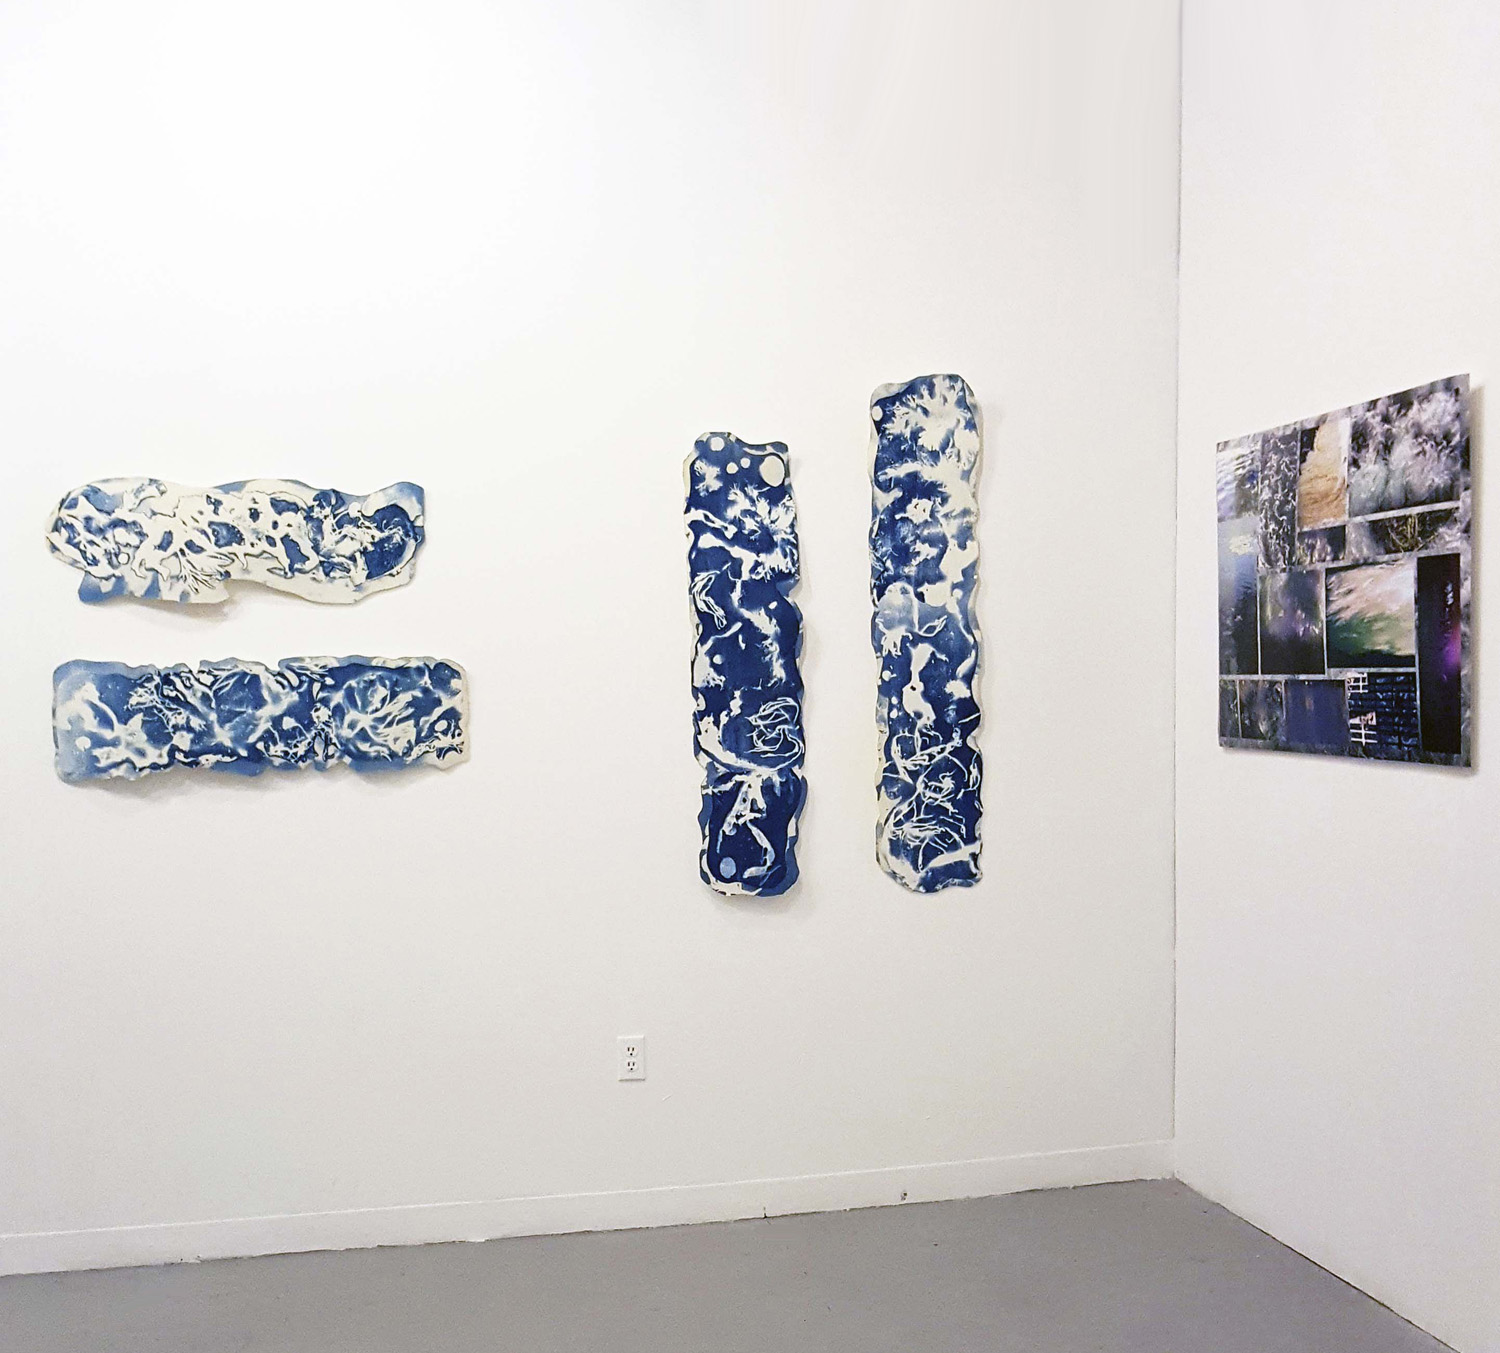 Installation: Flux Series + Water Montage at Spoke Gallery, Boston MA